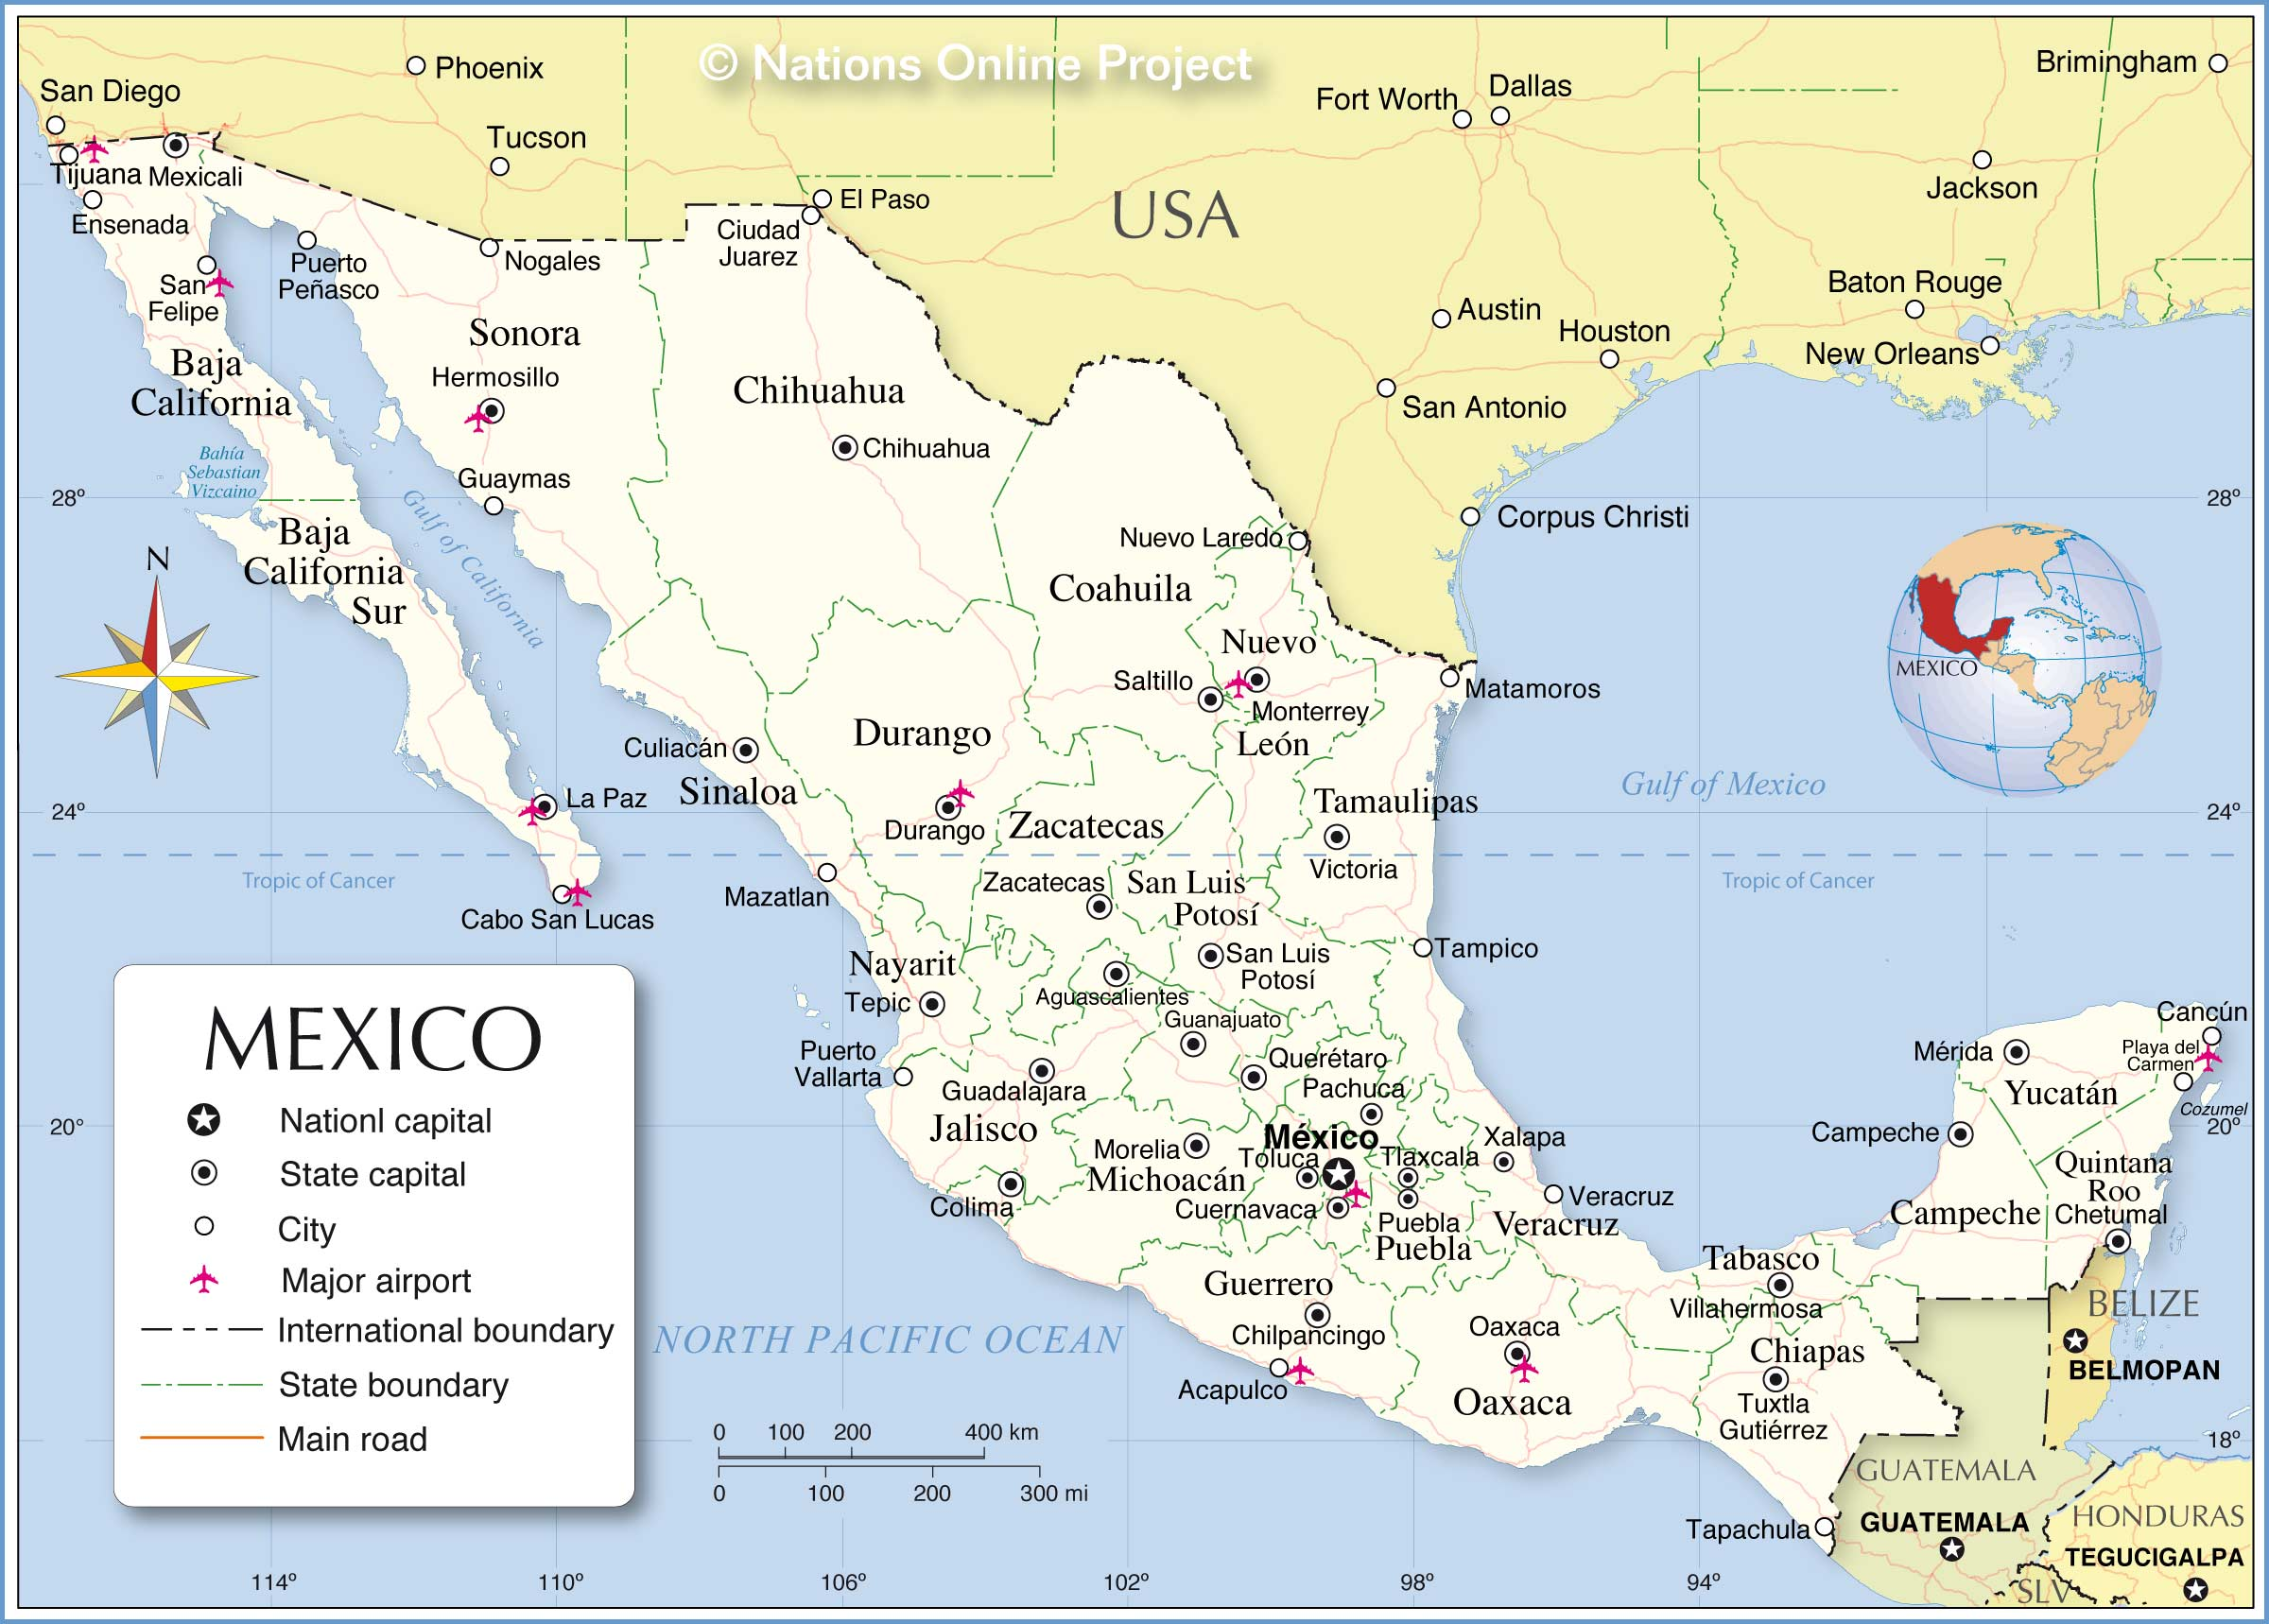 Administrative Map of Mexico - Nations Online Project on state of jalisco mexico map, morelos state mexico map, state of chihuahua mexico map, state of denver colorado map, venice illinois map, xalapa-veracruz map, state of guerrero mexico map, state of sinaloa mexico map, state of guanajuato mexico map, state of queretaro mexico map, state of puebla mexico map, state of sonora mexico map, state of yucatan mexico map, state of hidalgo mexico map, puebla mx map, state of chiapas mexico map, state of vera cruz, panuco river map, state of durango mexico map, usgs earthquake map,